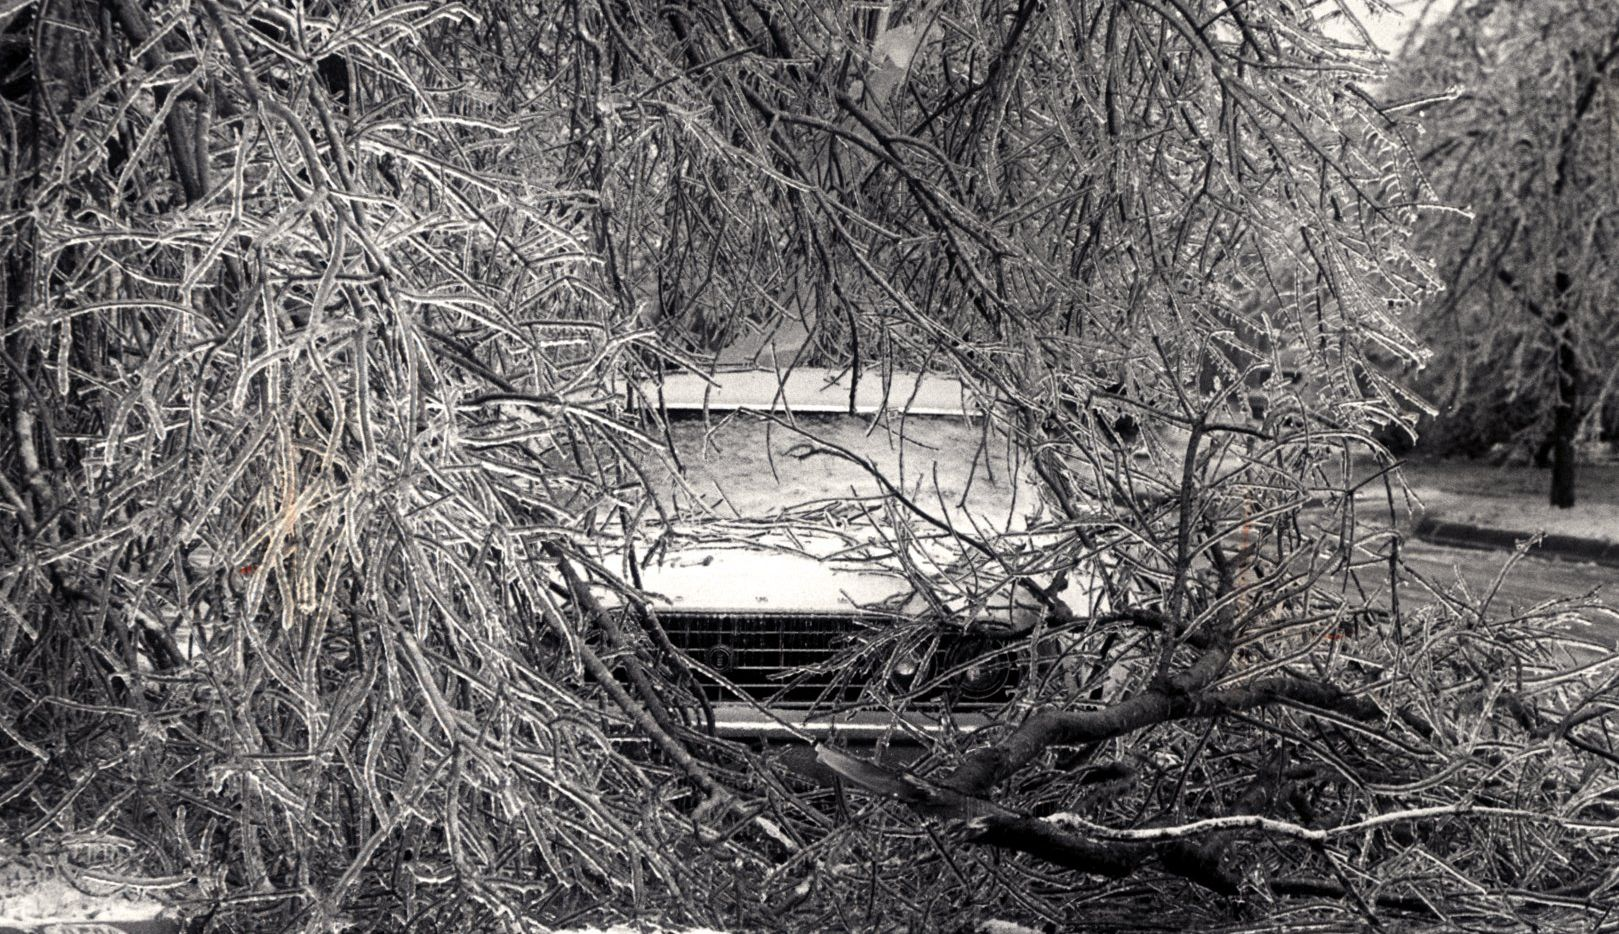 December 31, 1978. Icy tree branches on car at 7060.